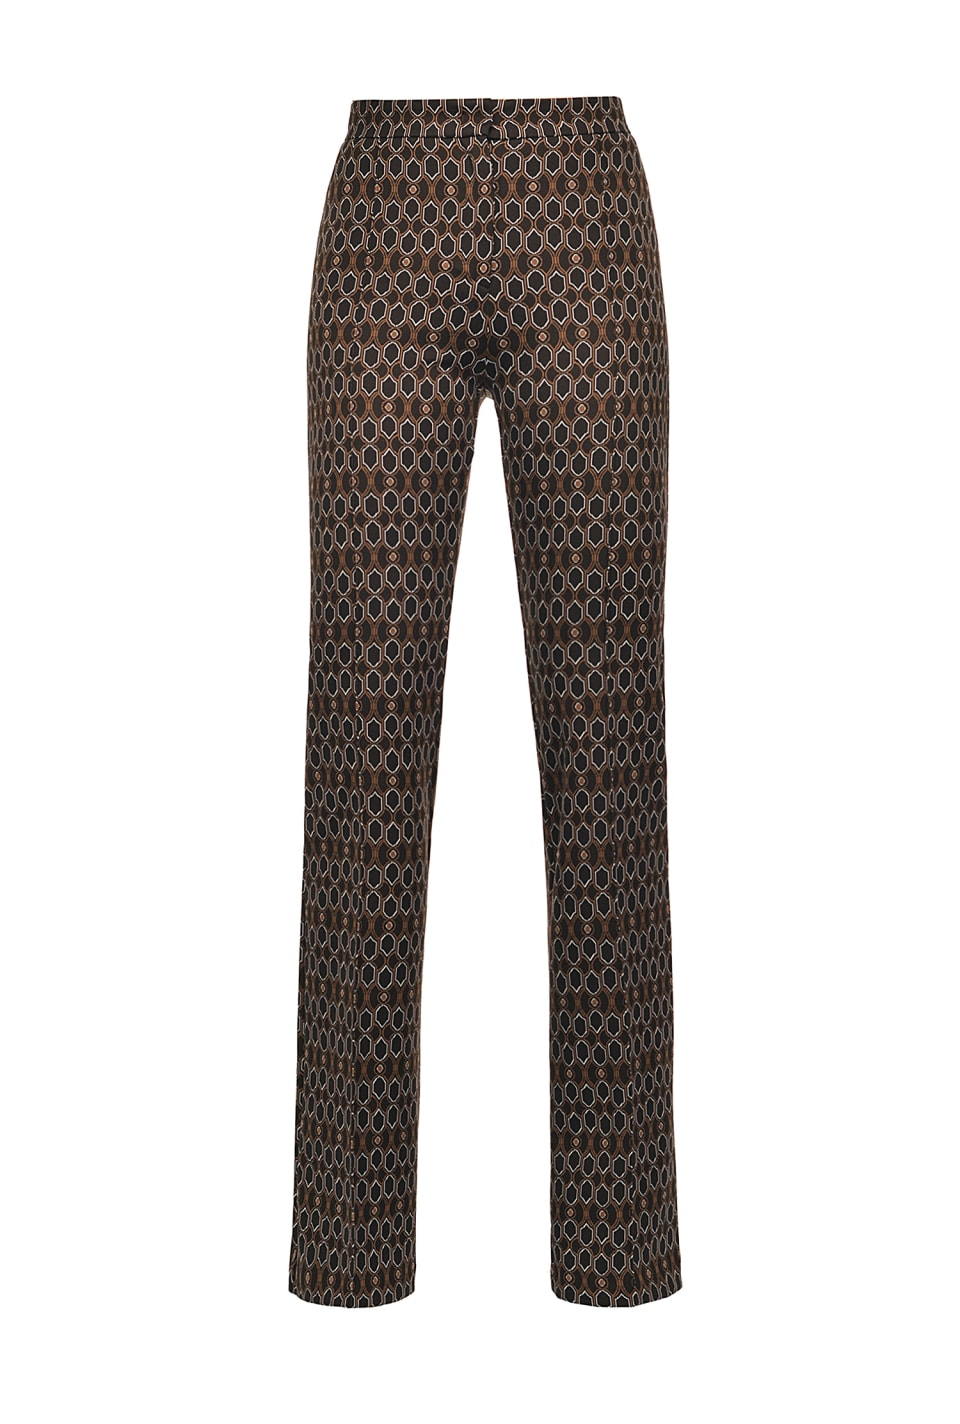 70s geometric pattern trousers - Pinko